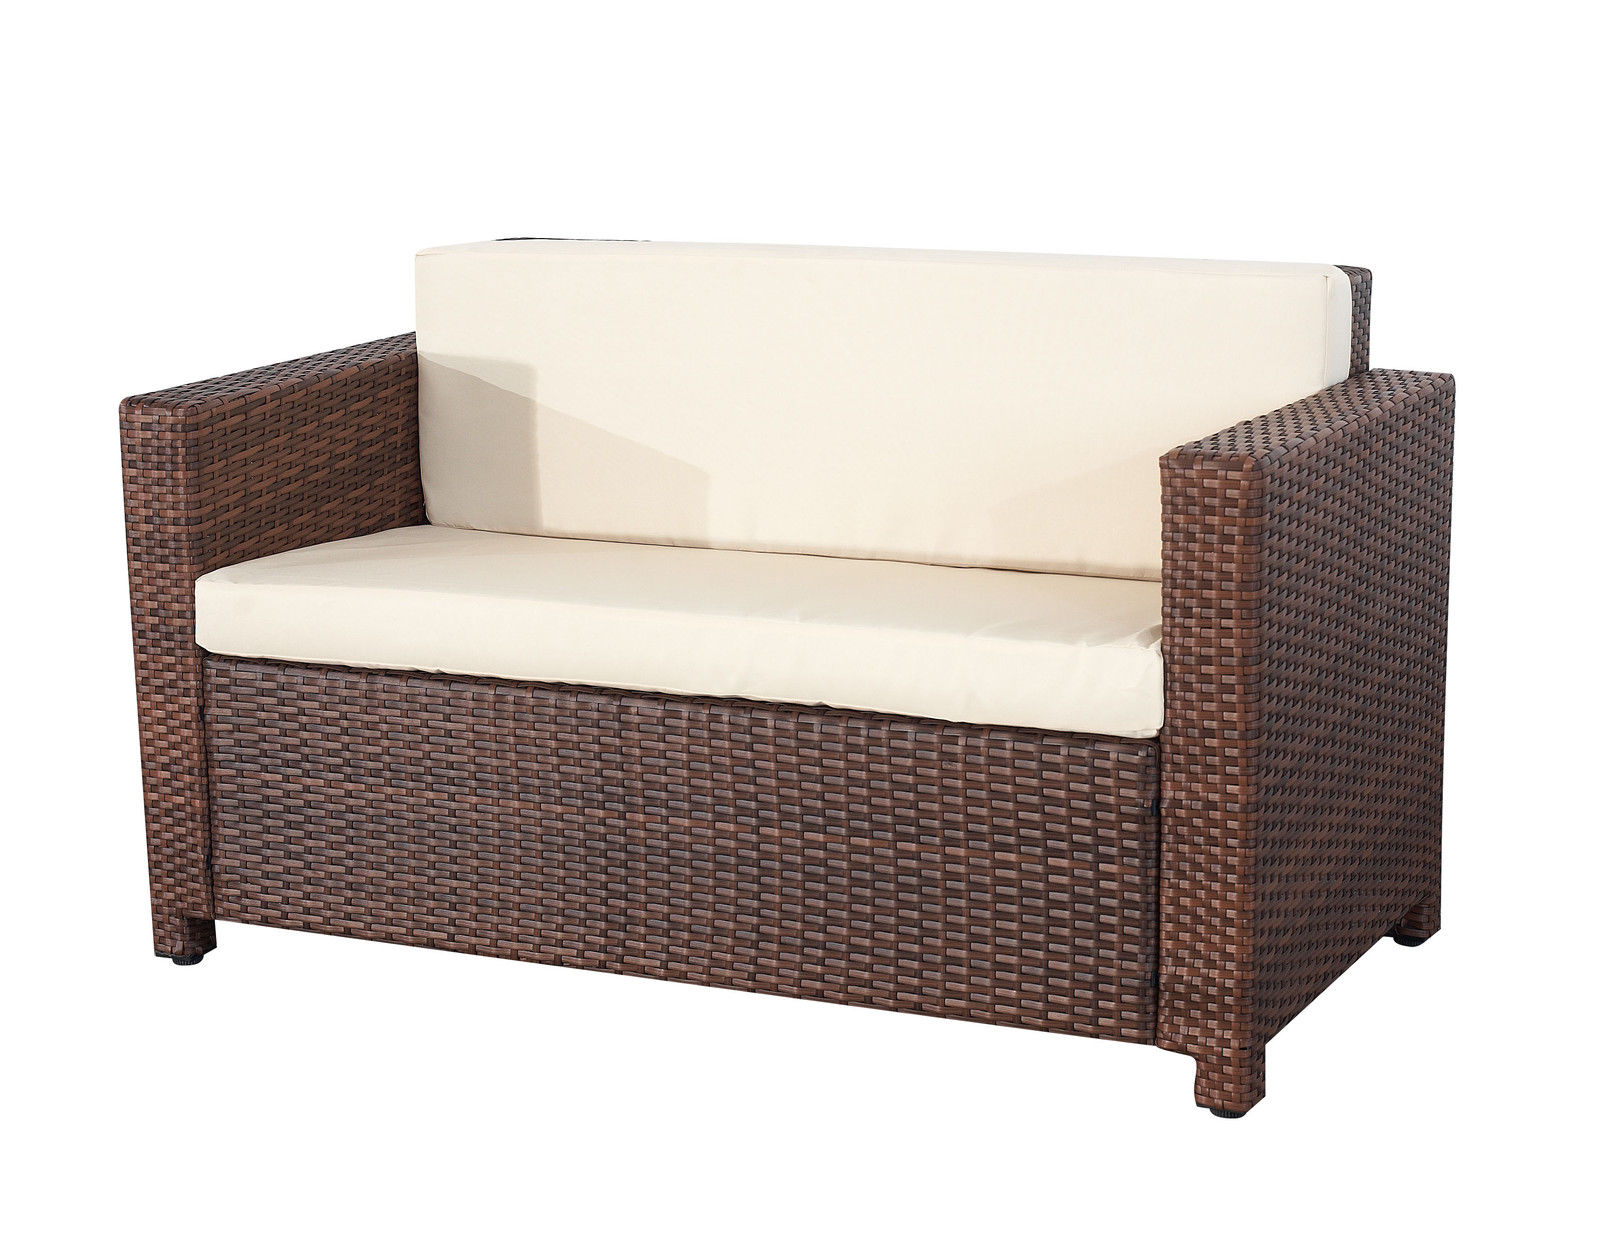 Evre-Rome-4PCS-Weatherproof-Outdoor-Furniture-Set-Durable-Rattan-Brown